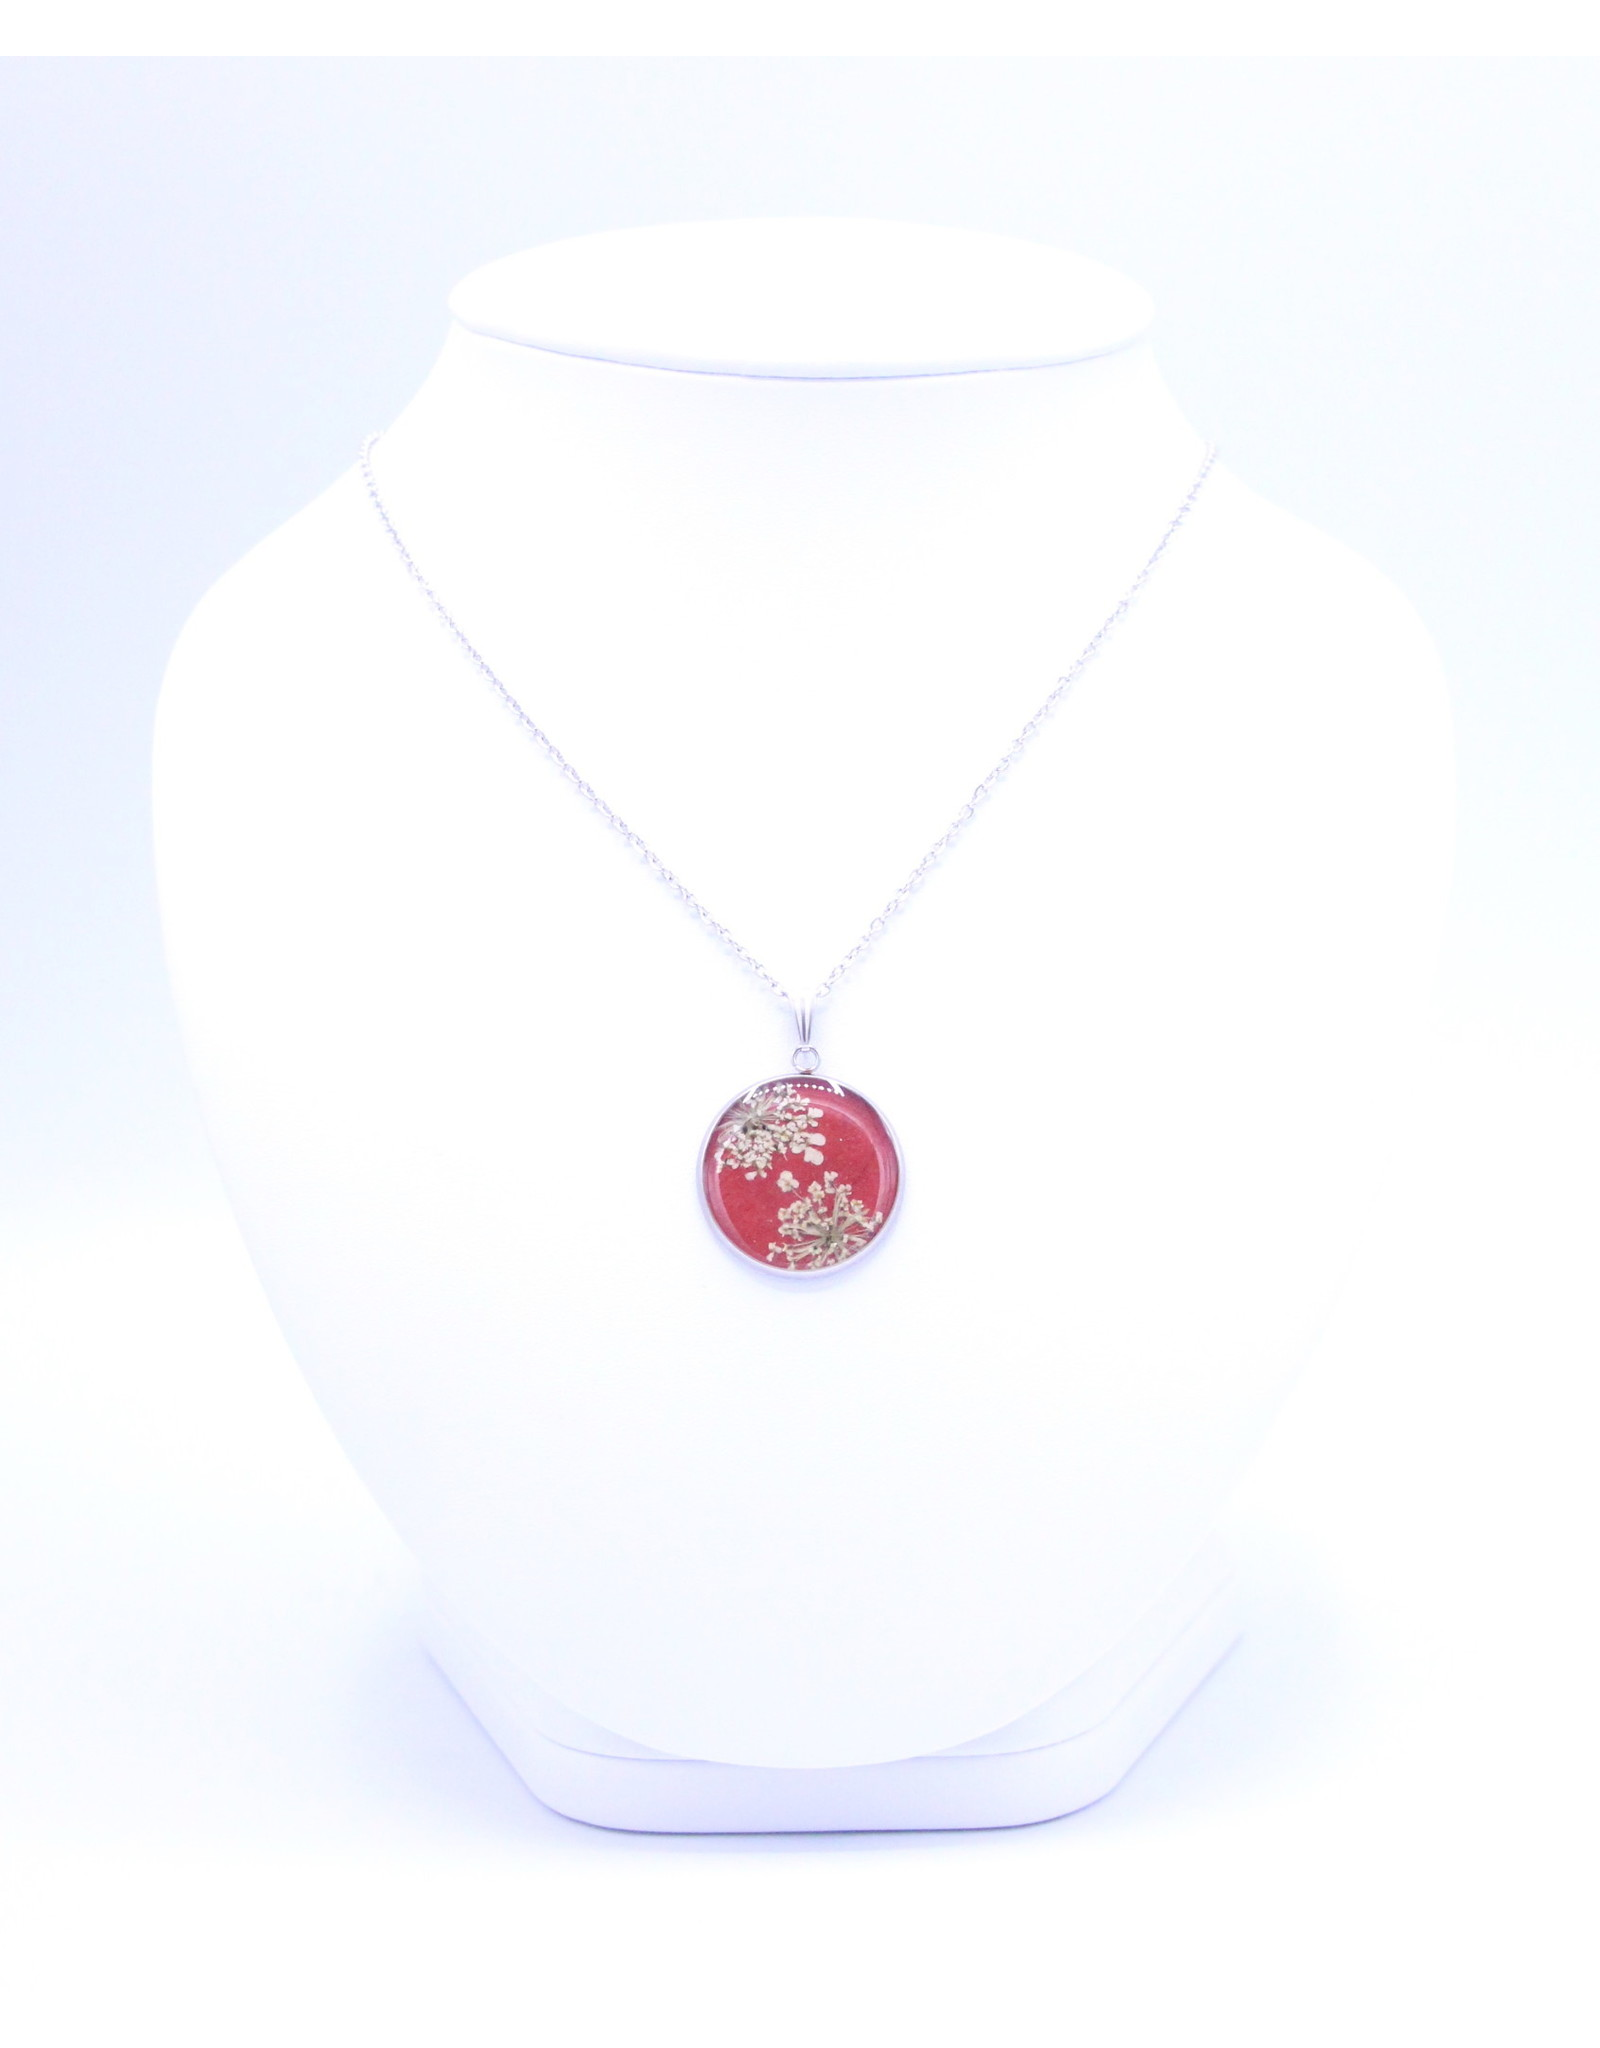 25mm Queen Anne's Lace Necklace Red - N25QAR1